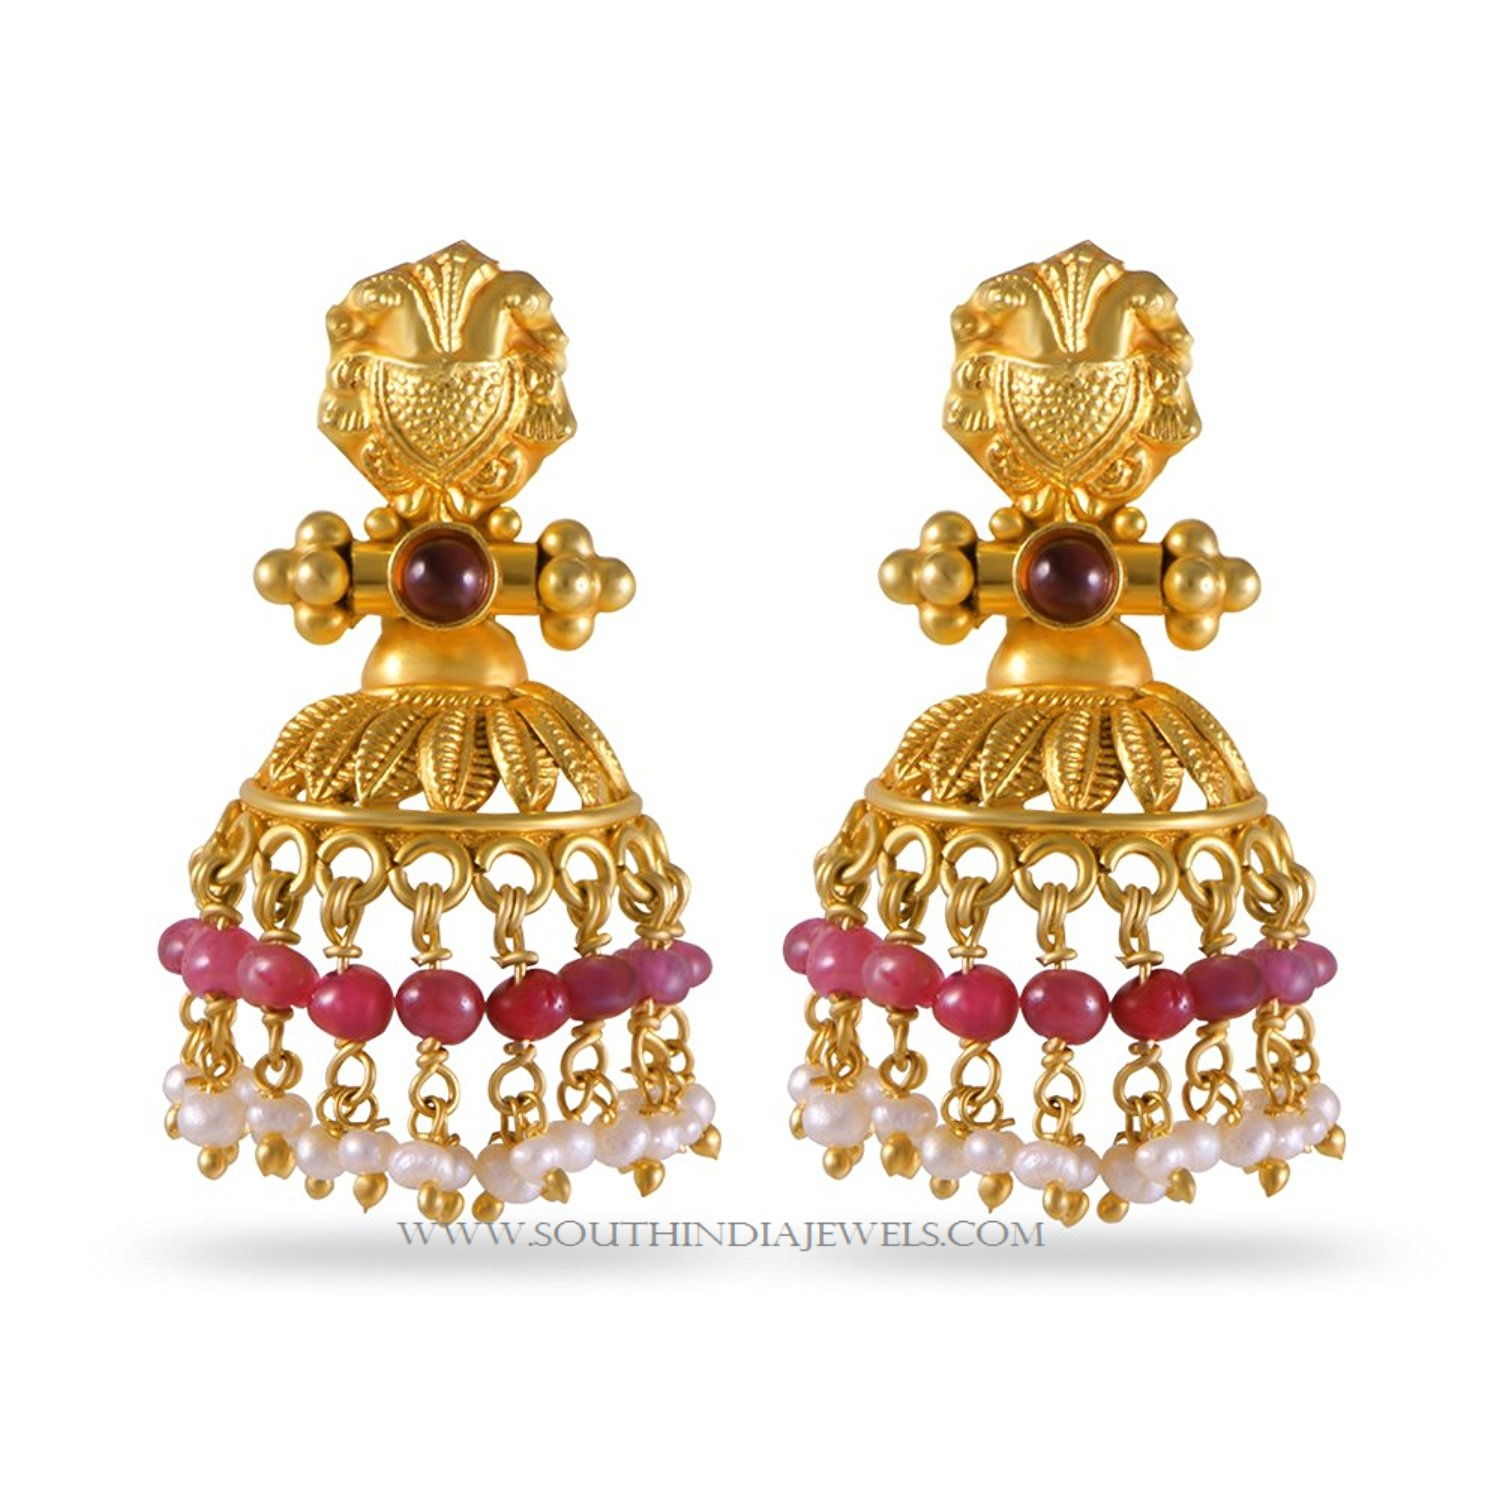 Joyalukkas Jewellery Designs With Price ~ South India Jewels